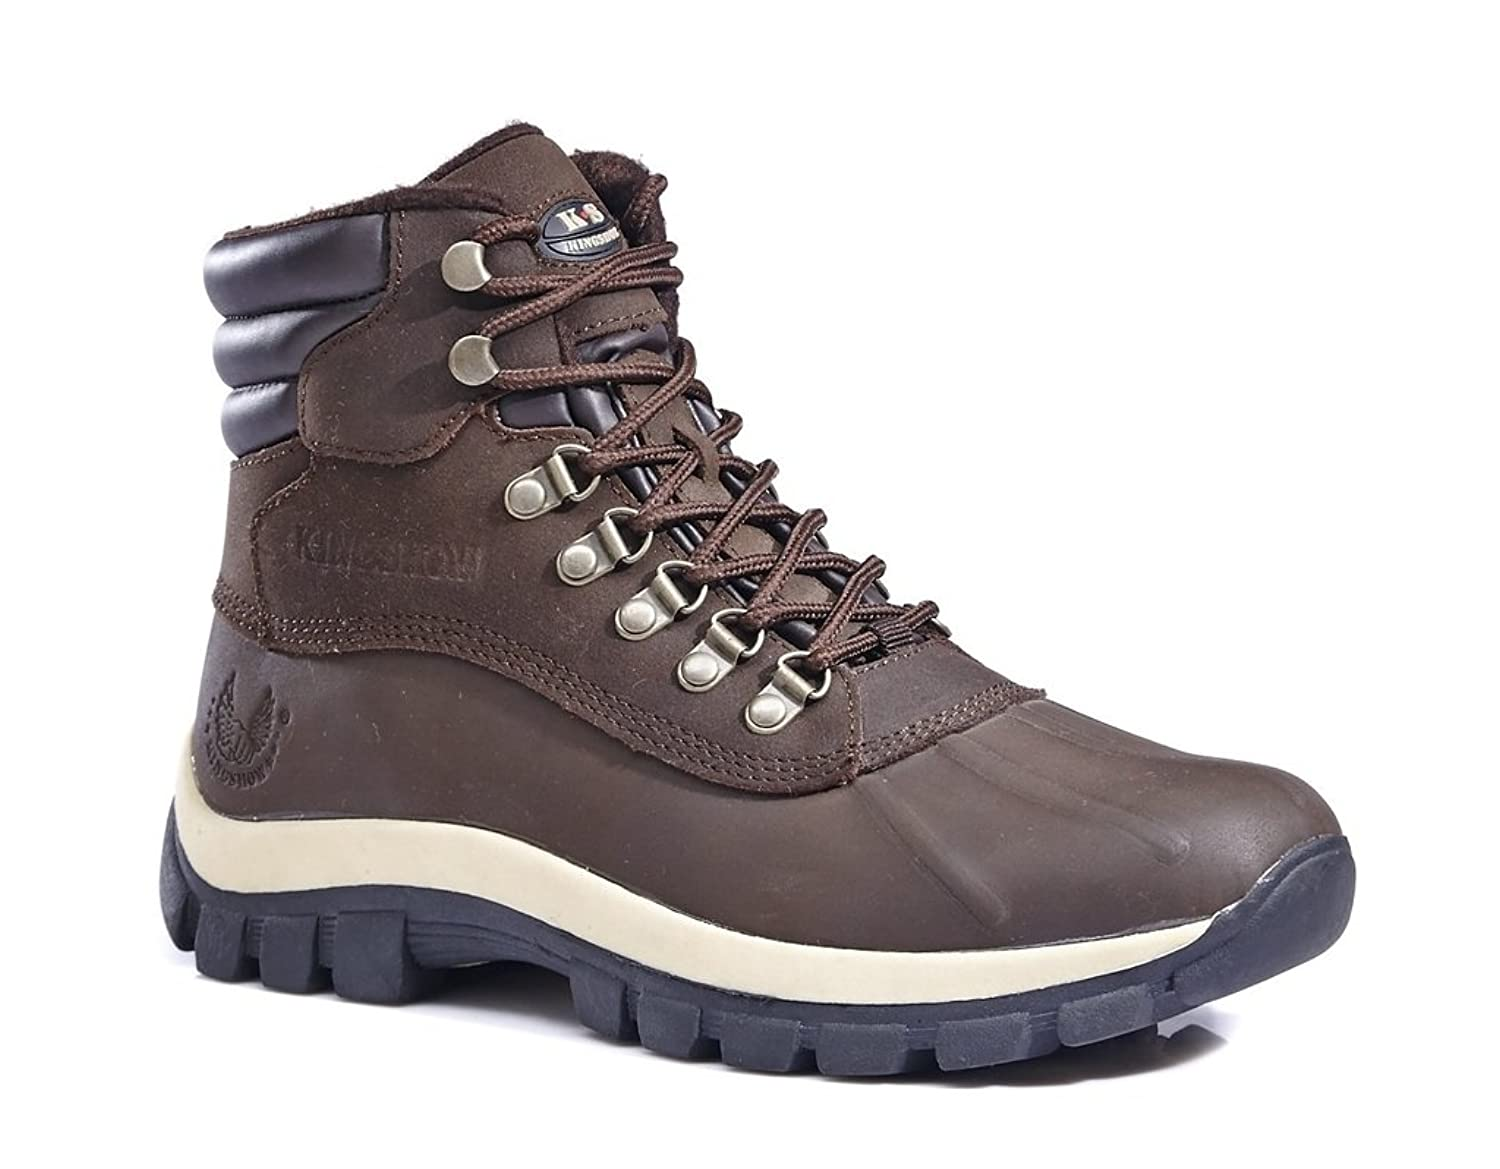 KINGSHOW Men's M0705 Water Proof Brown Leather Rubber Sole Winter Snow Boots 8.5 M US